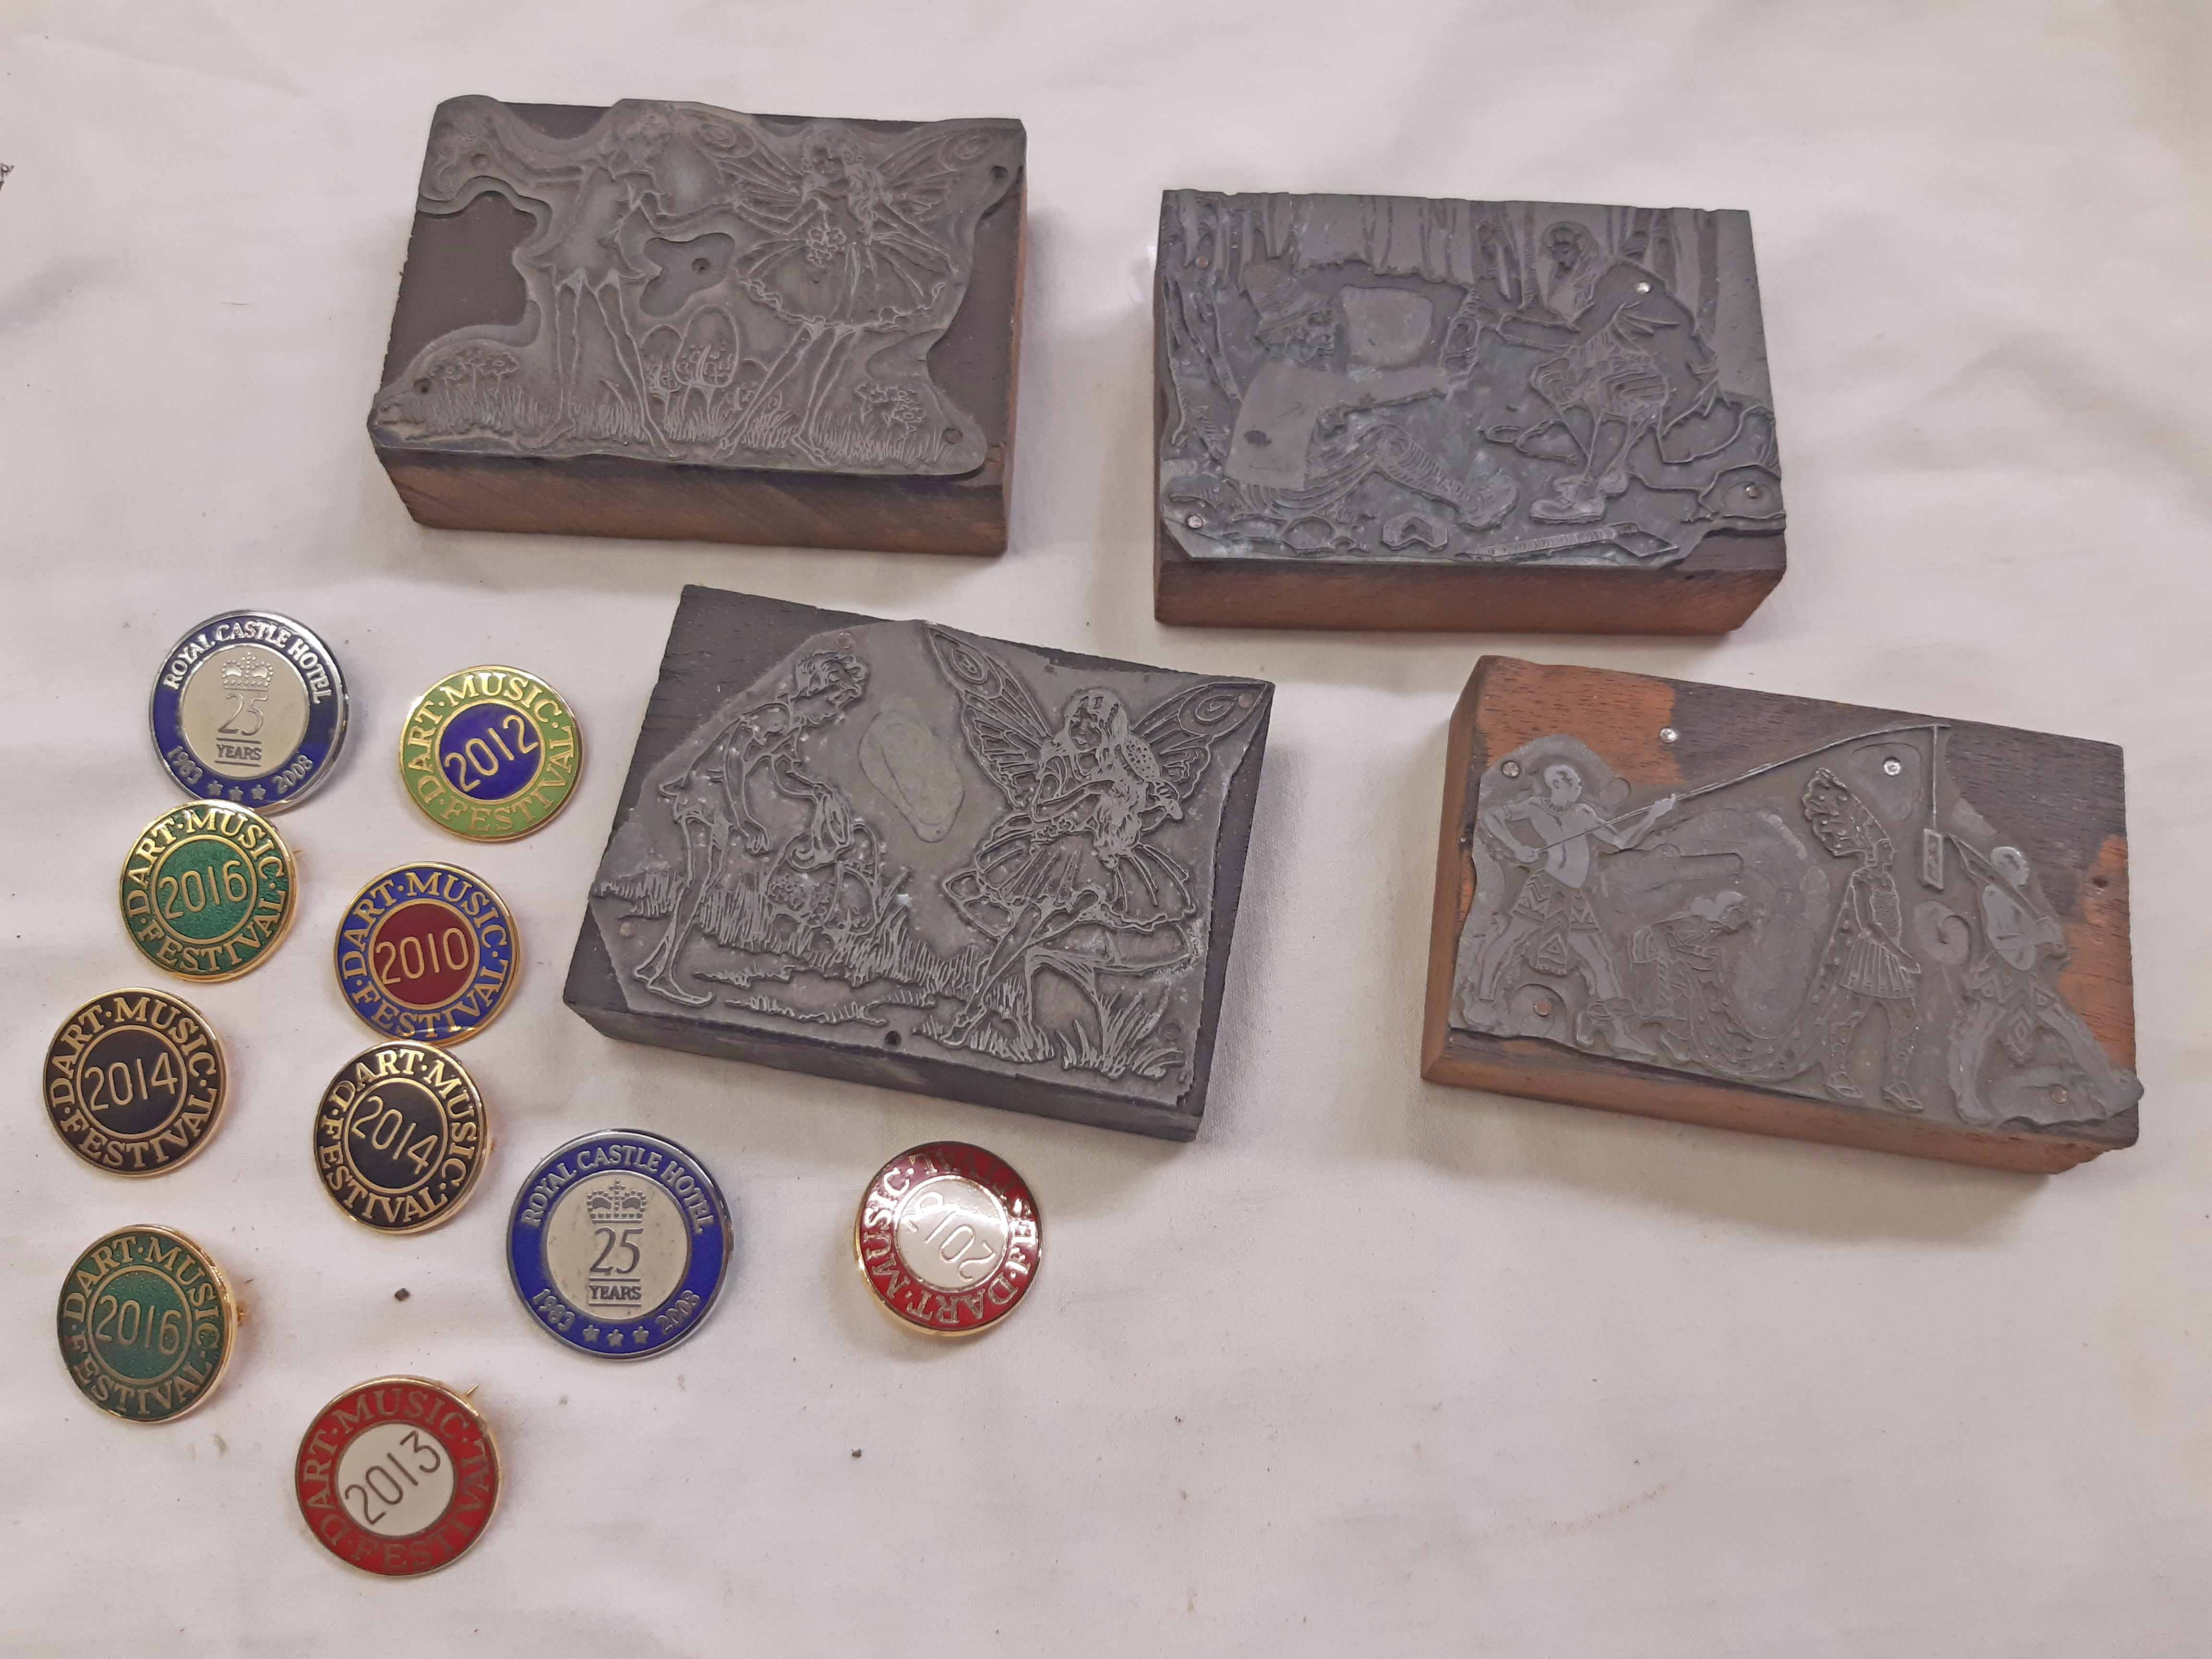 Four vintage ink printing blocks depicting children's story scenes - sold with a bag of Dart Music